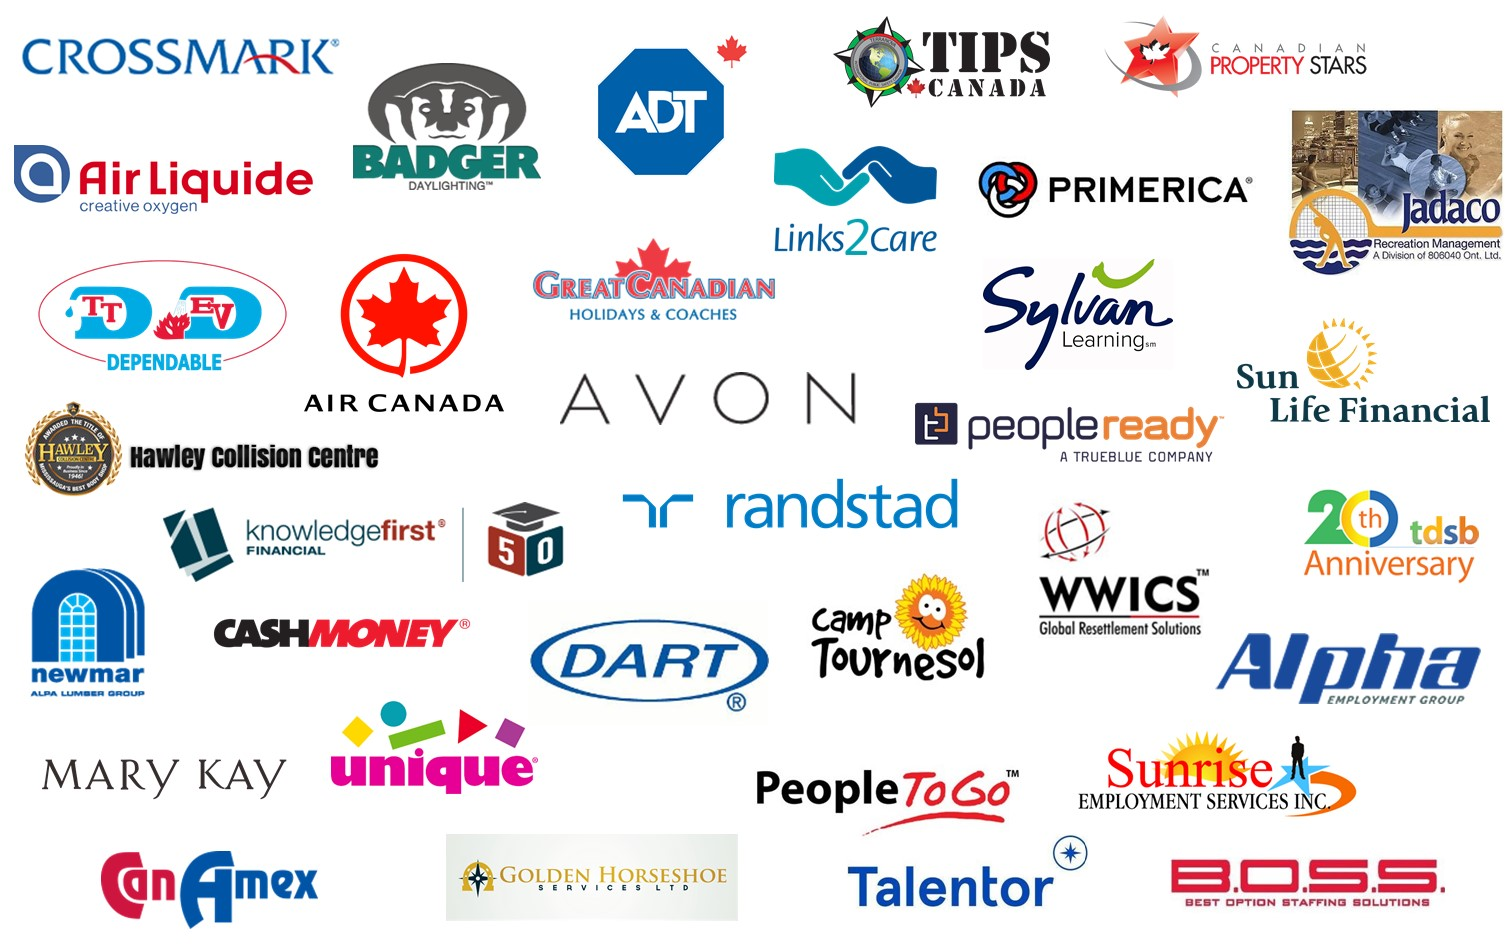 Mississauga List of Exhibitors